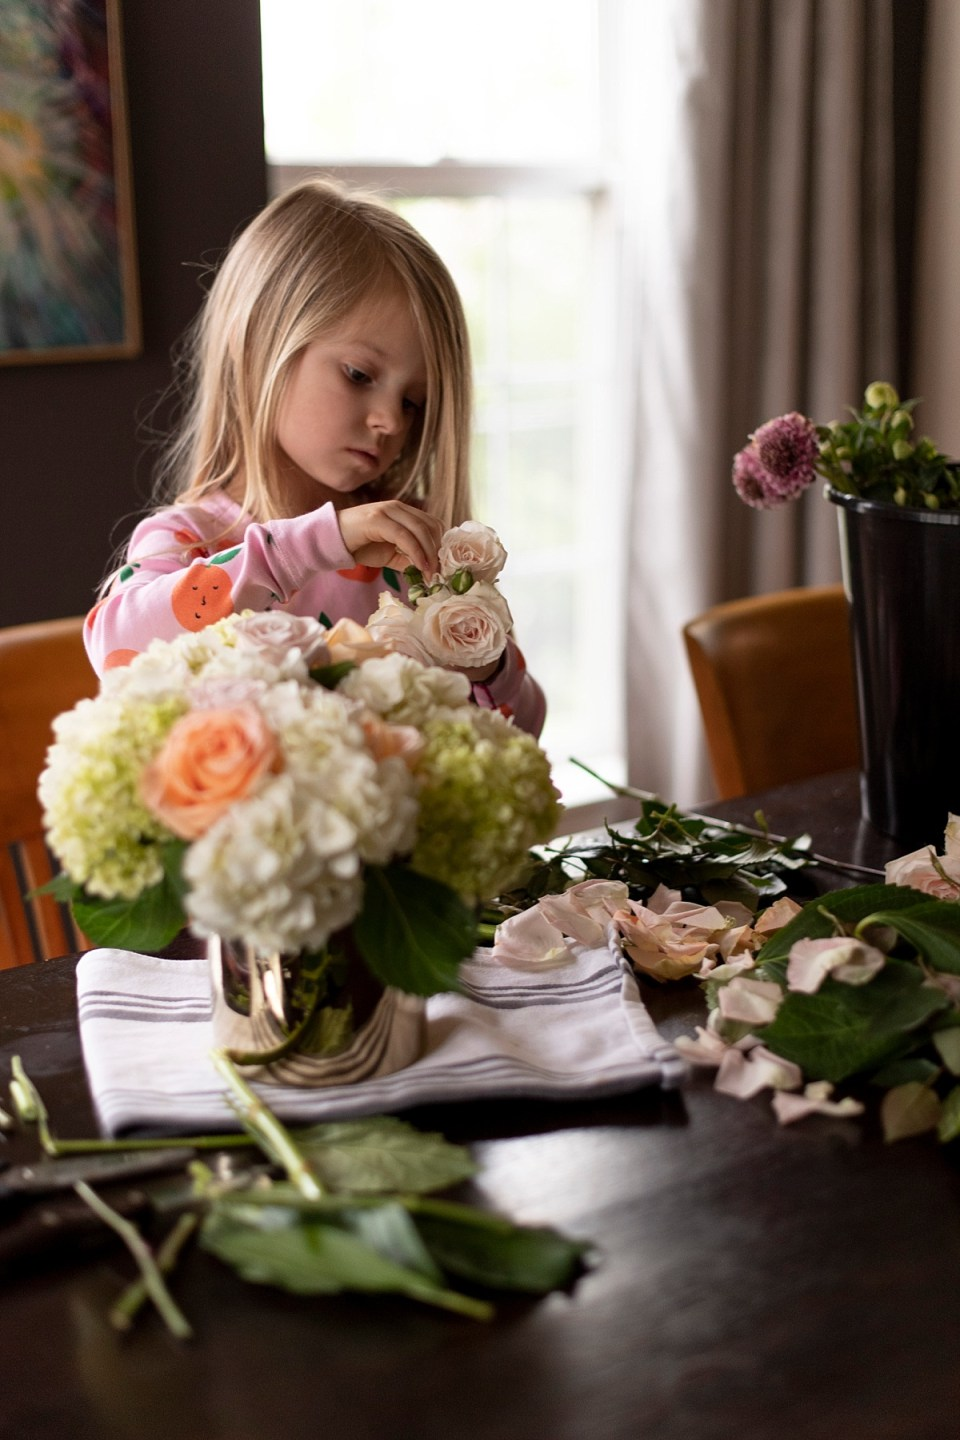 Creative Things to do at Home with Kids - Flower Arranging Workshop with Helen Olivia Flowers in Alexandria, VA